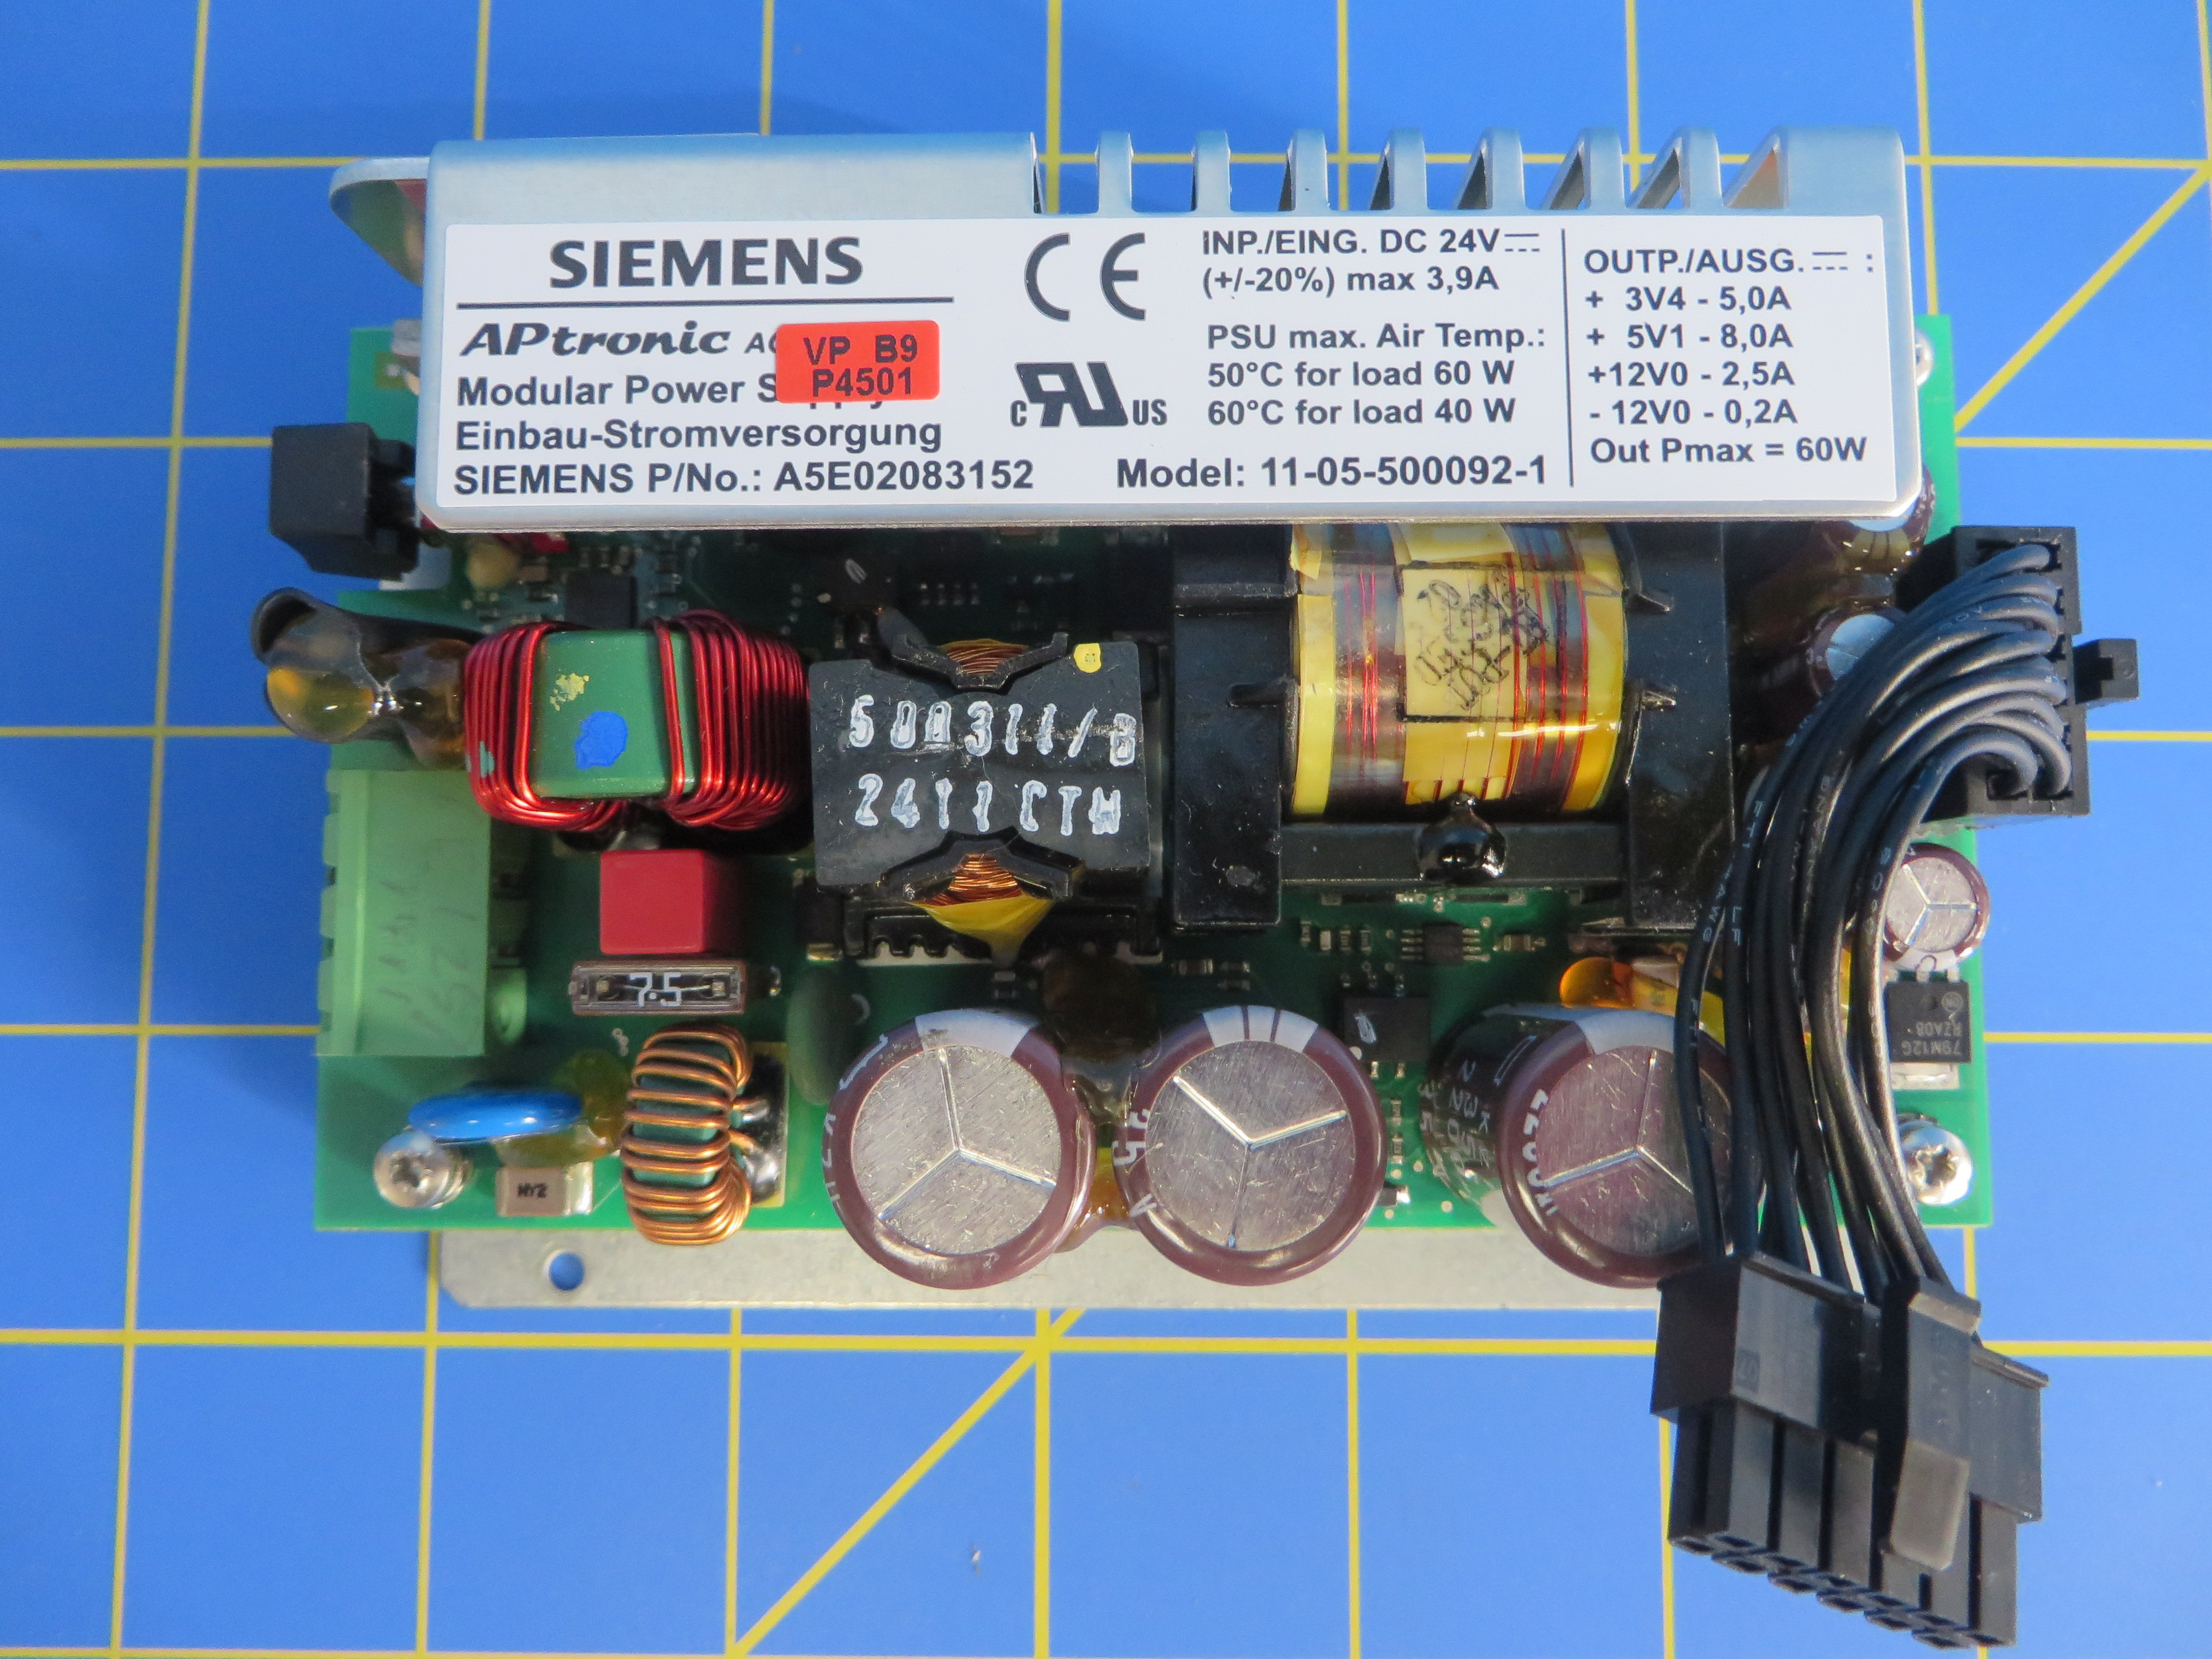 Siemens A5e02083152 Simatic Power Supply 24v 39a For Ipc427c Schematic Diagram Of 24vdc Images Ipc477c Pc 427b